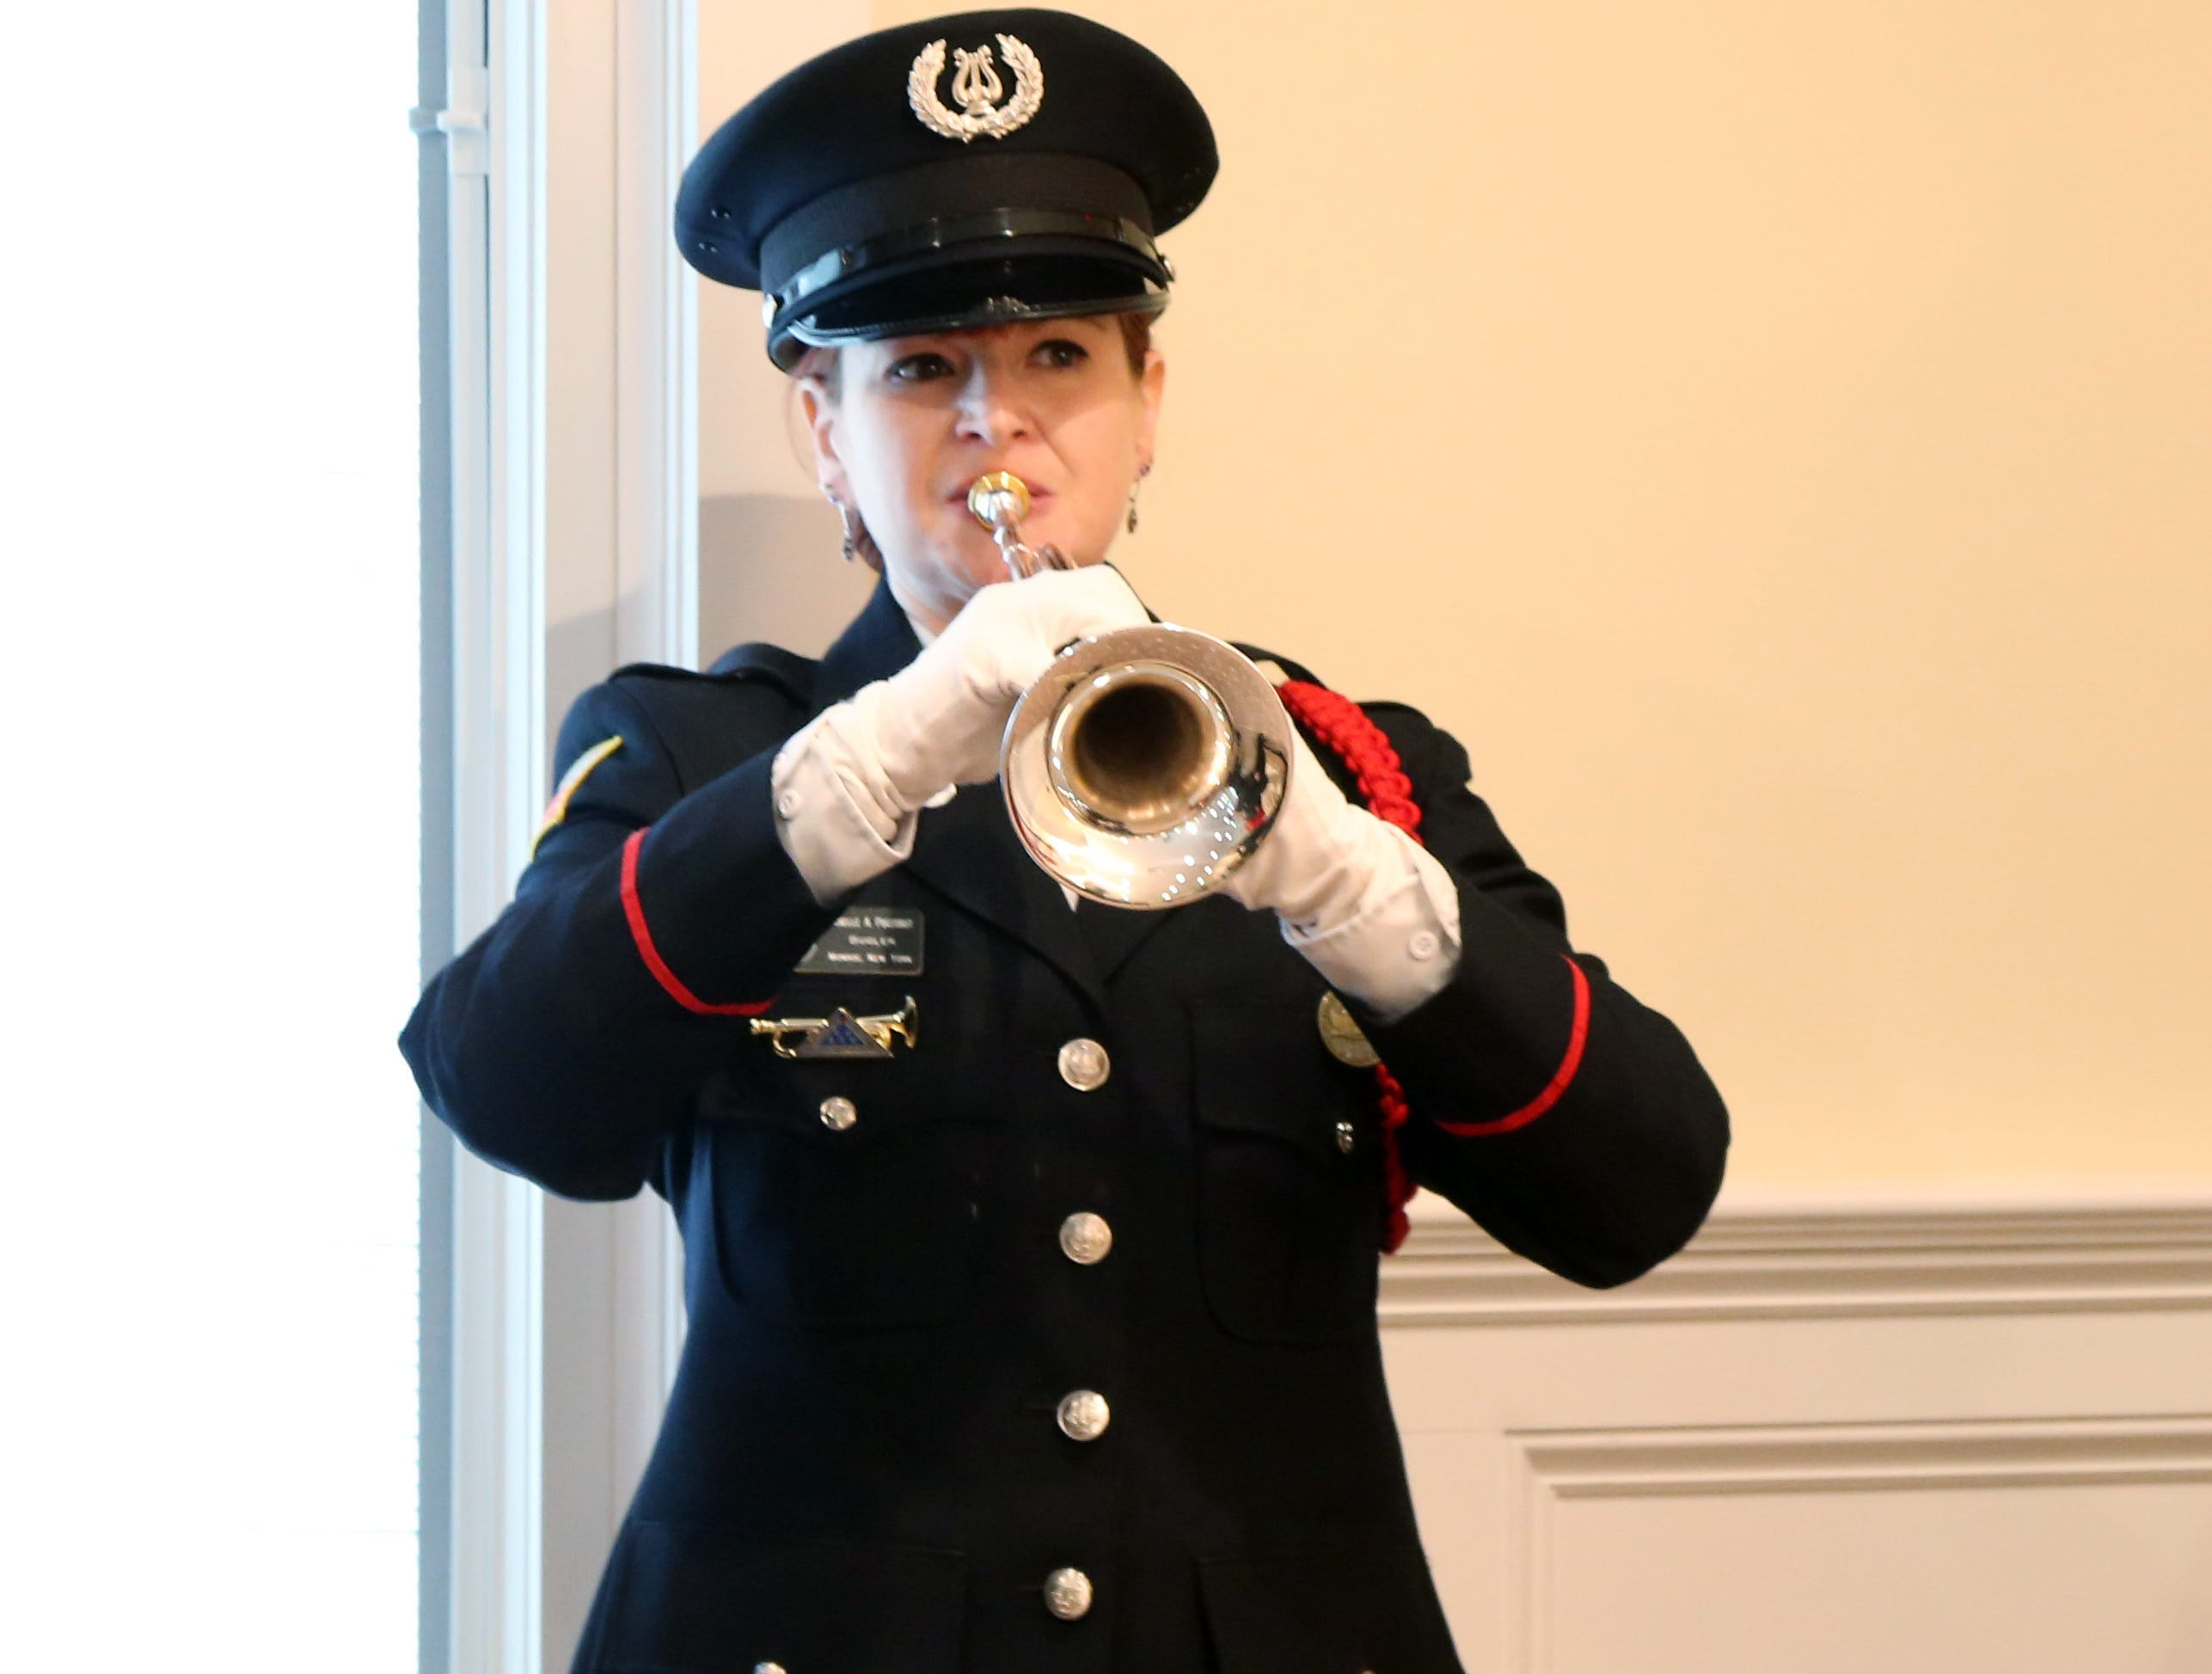 Michelle Poczobut plays taps during Thursday's memorial service for four veterans at Libby Funeral Home in Beacon on January 10, 2019. Poezobut is a member of Bugles Across America.